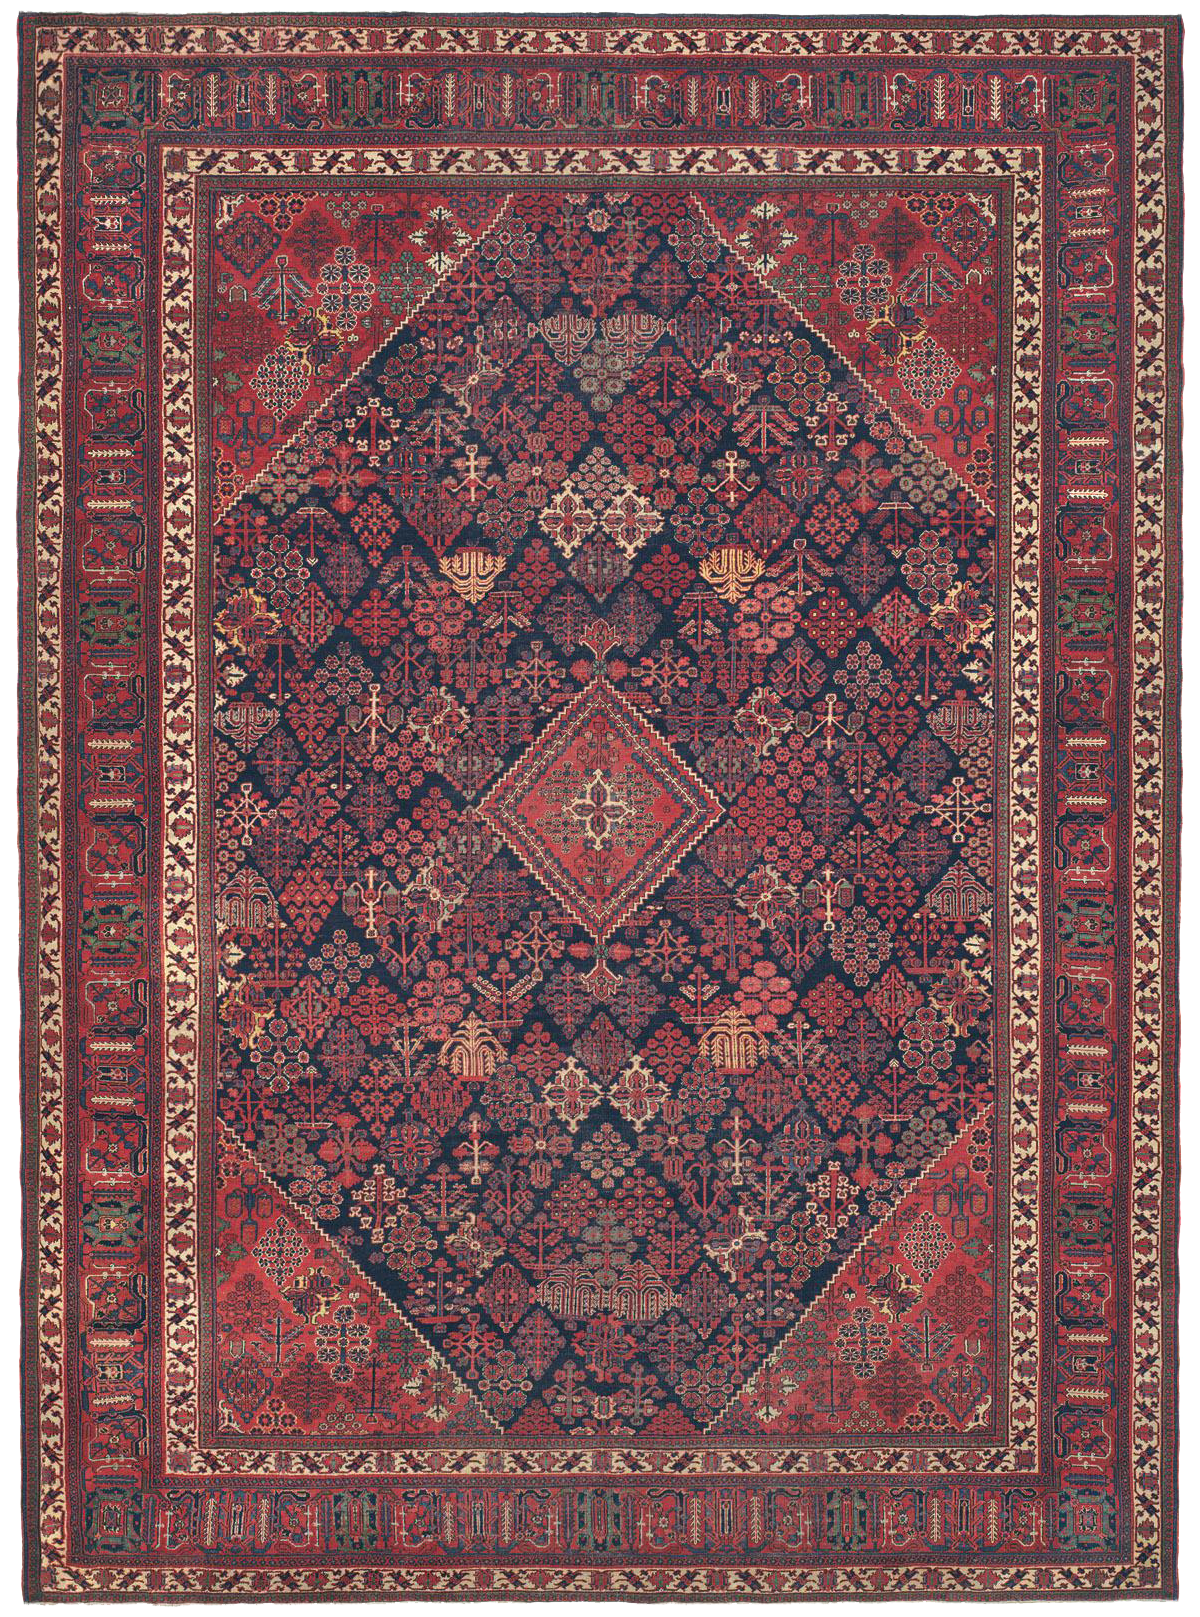 The Four Traditions Of Antique Rug Weaving 3 Town Claremont Rug Company Rugs Antique Persian Carpet Oriental Persian Rugs